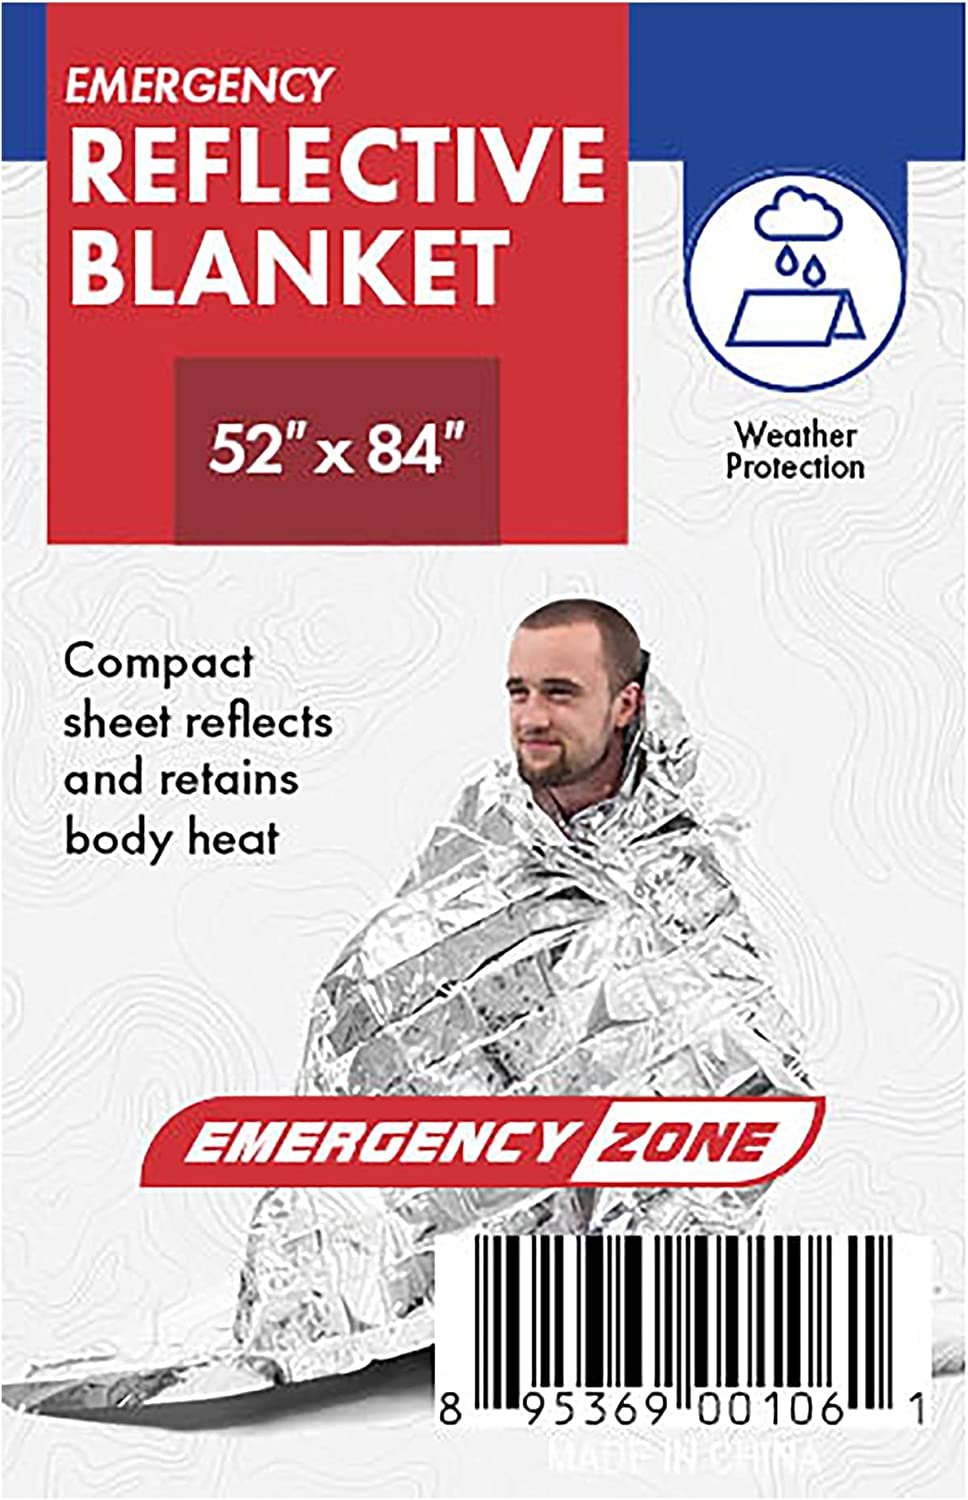 2021 spring and Fixed price for sale summer new Emergency Zone Thermal Reflective Pack 1 Blanket.